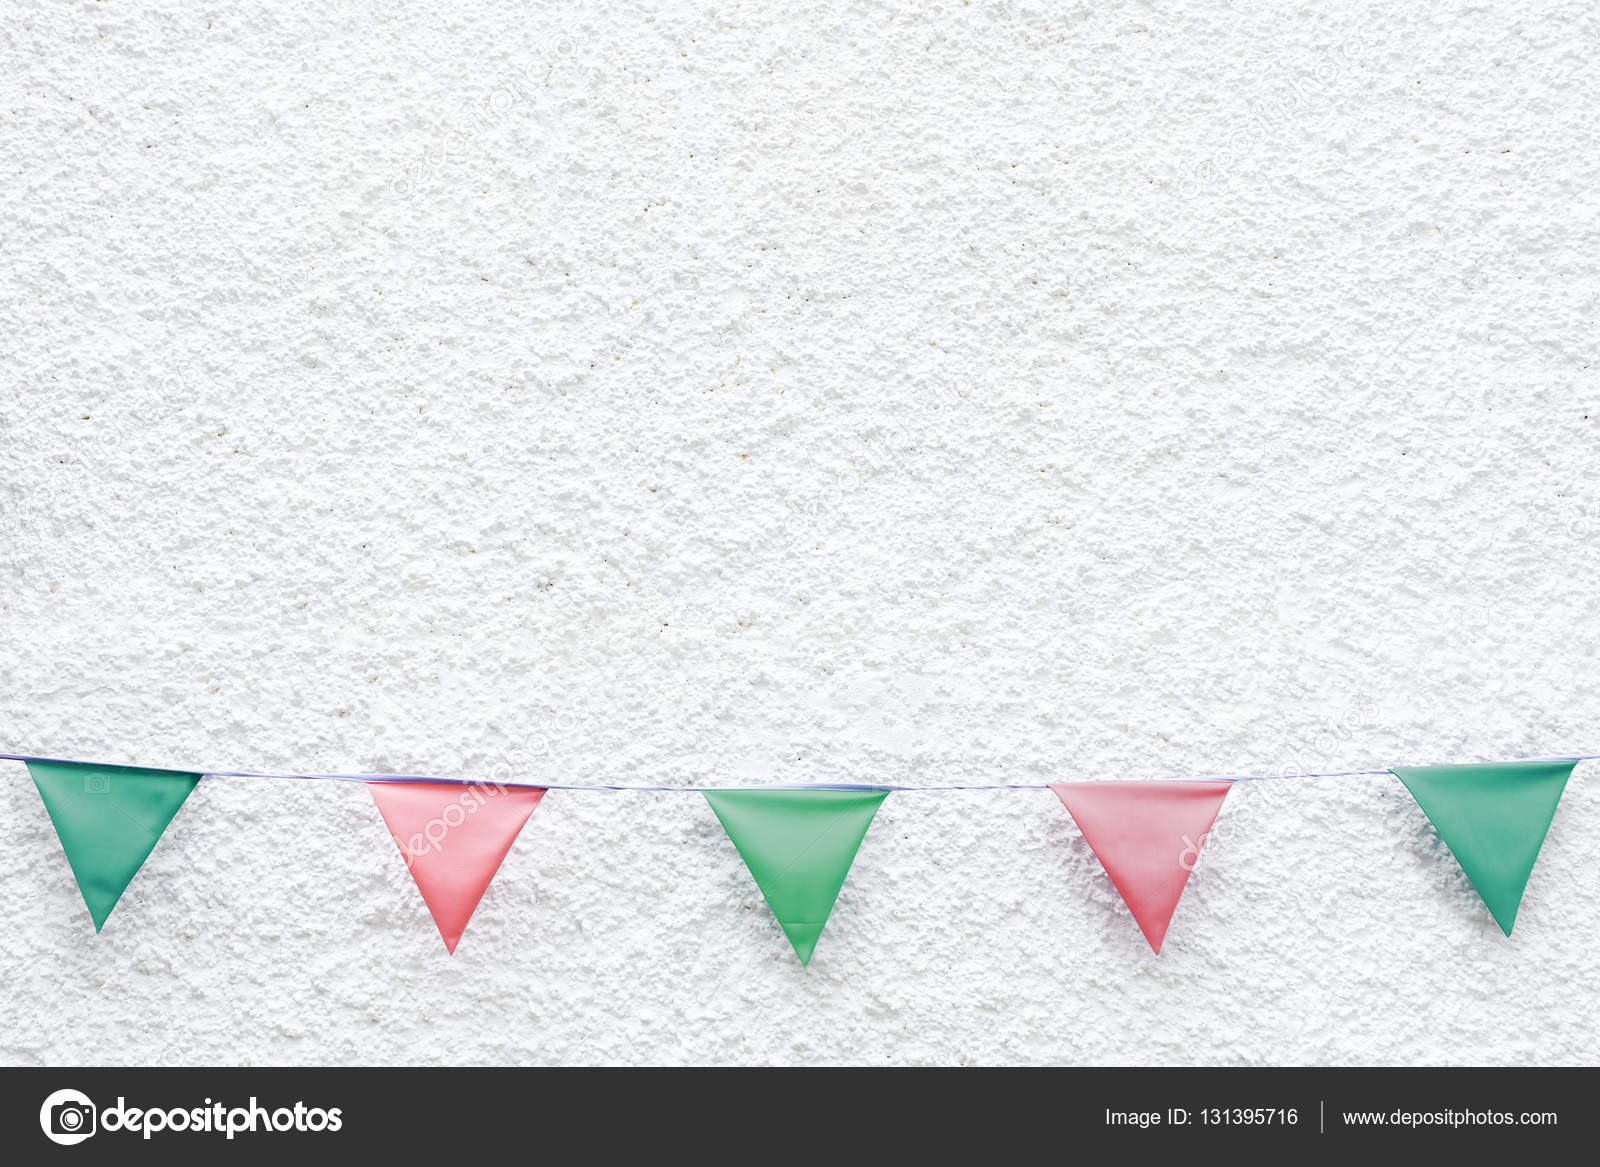 Merry Christmas Party Flags Bunting Hanging On White Wall Background Xmas Eve Holiday Event Minimal Hipster Style Design Photo By Galzpaakagmail